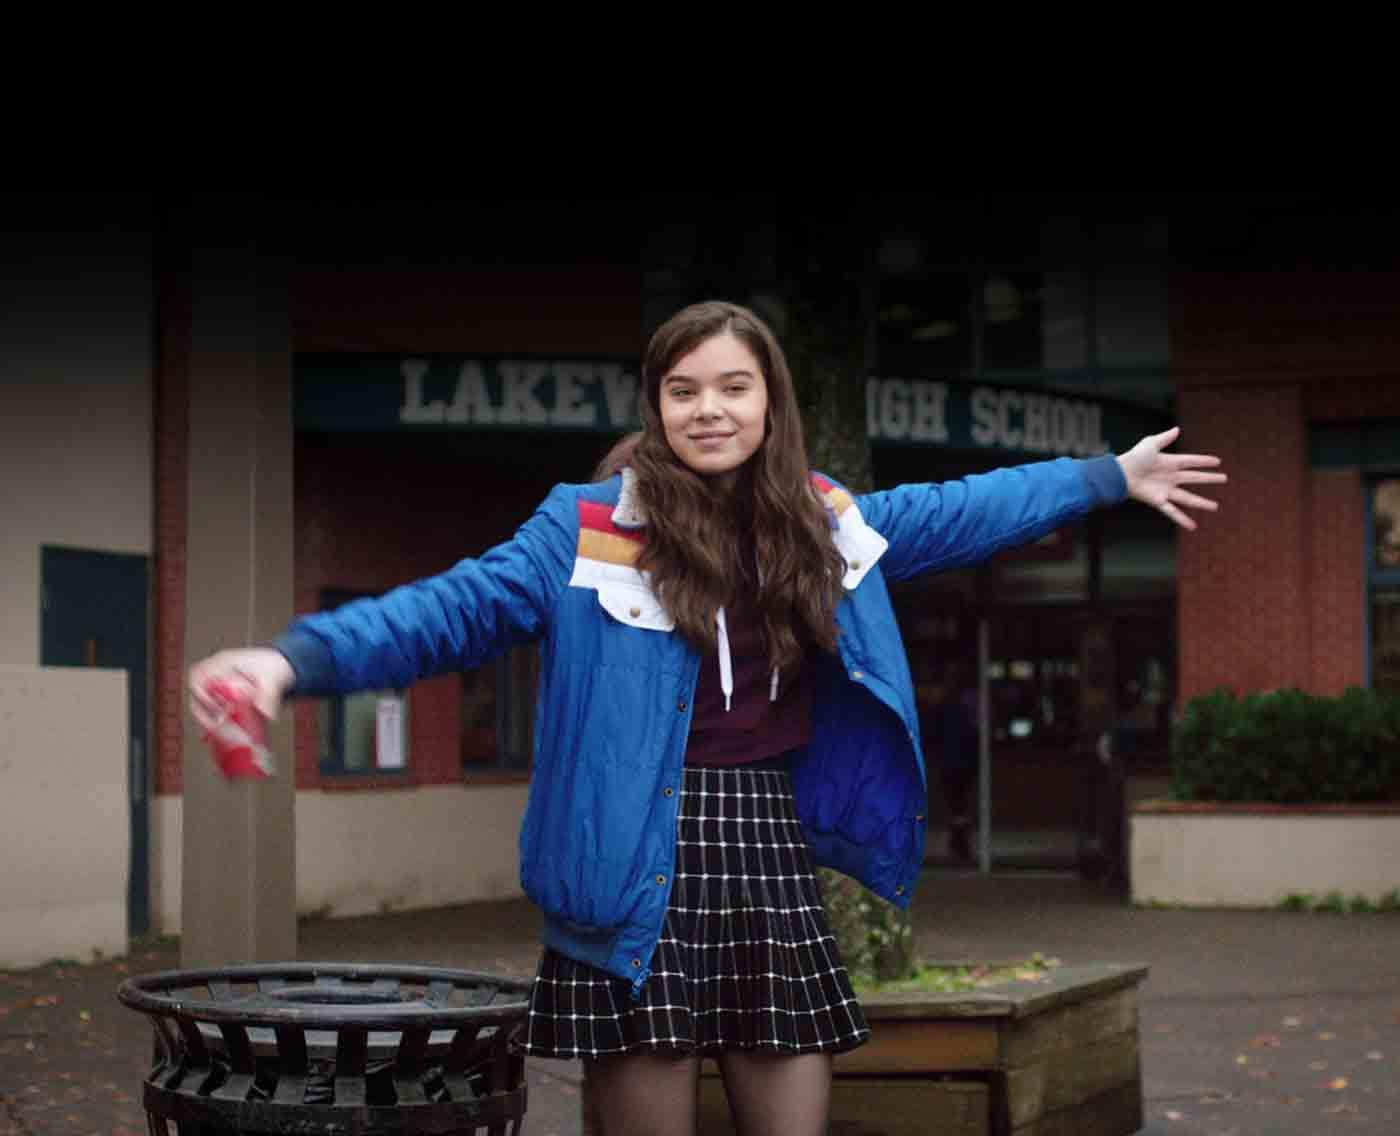 Check out the movie photos of 'The Edge of Seventeen'